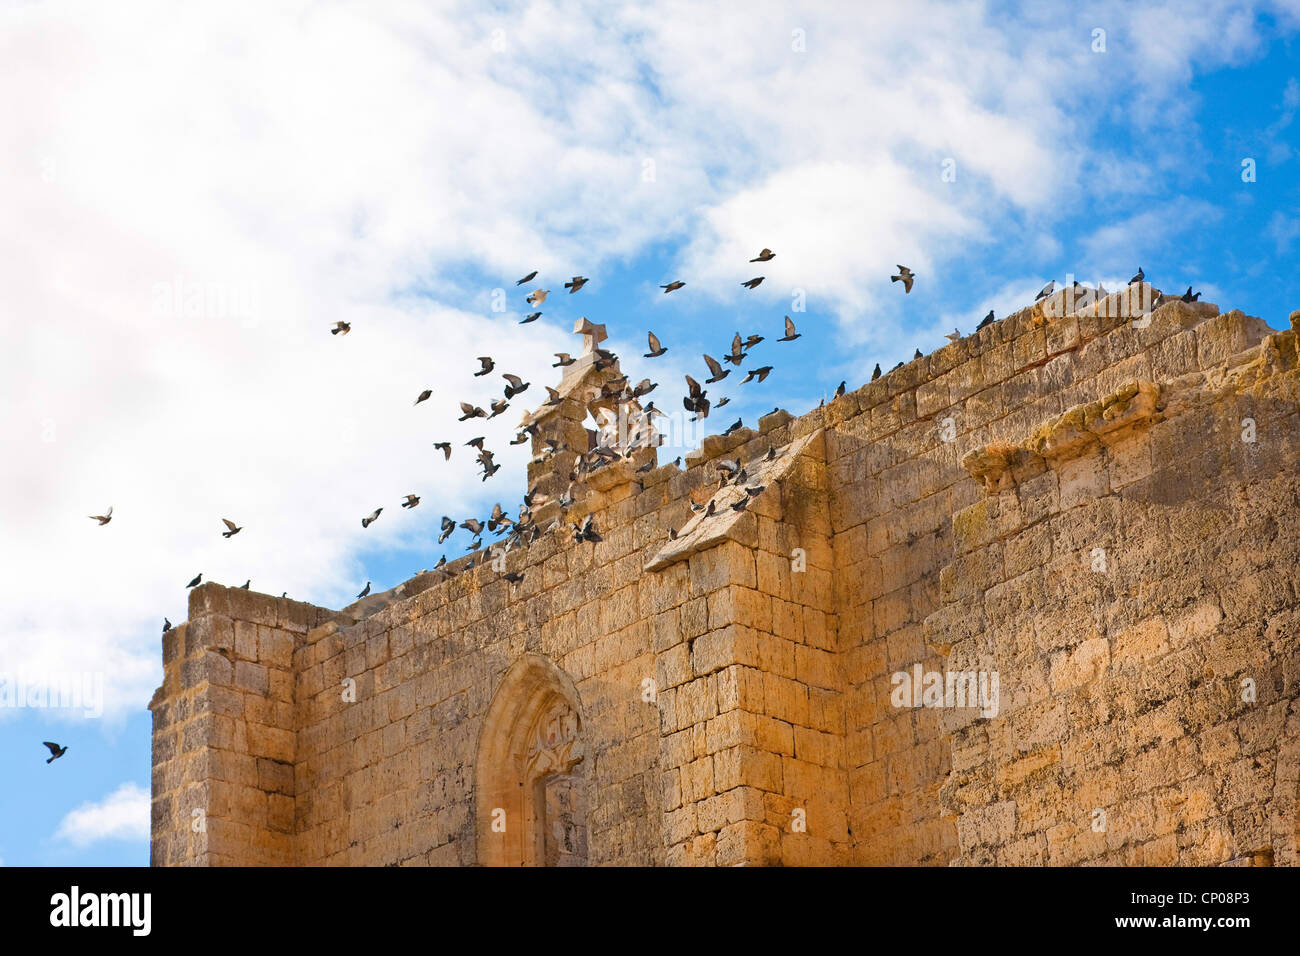 pigeons flying ver the ruin of Antonius church, Spain, Kastilien und Len, Burgos, San Anton - Stock Image